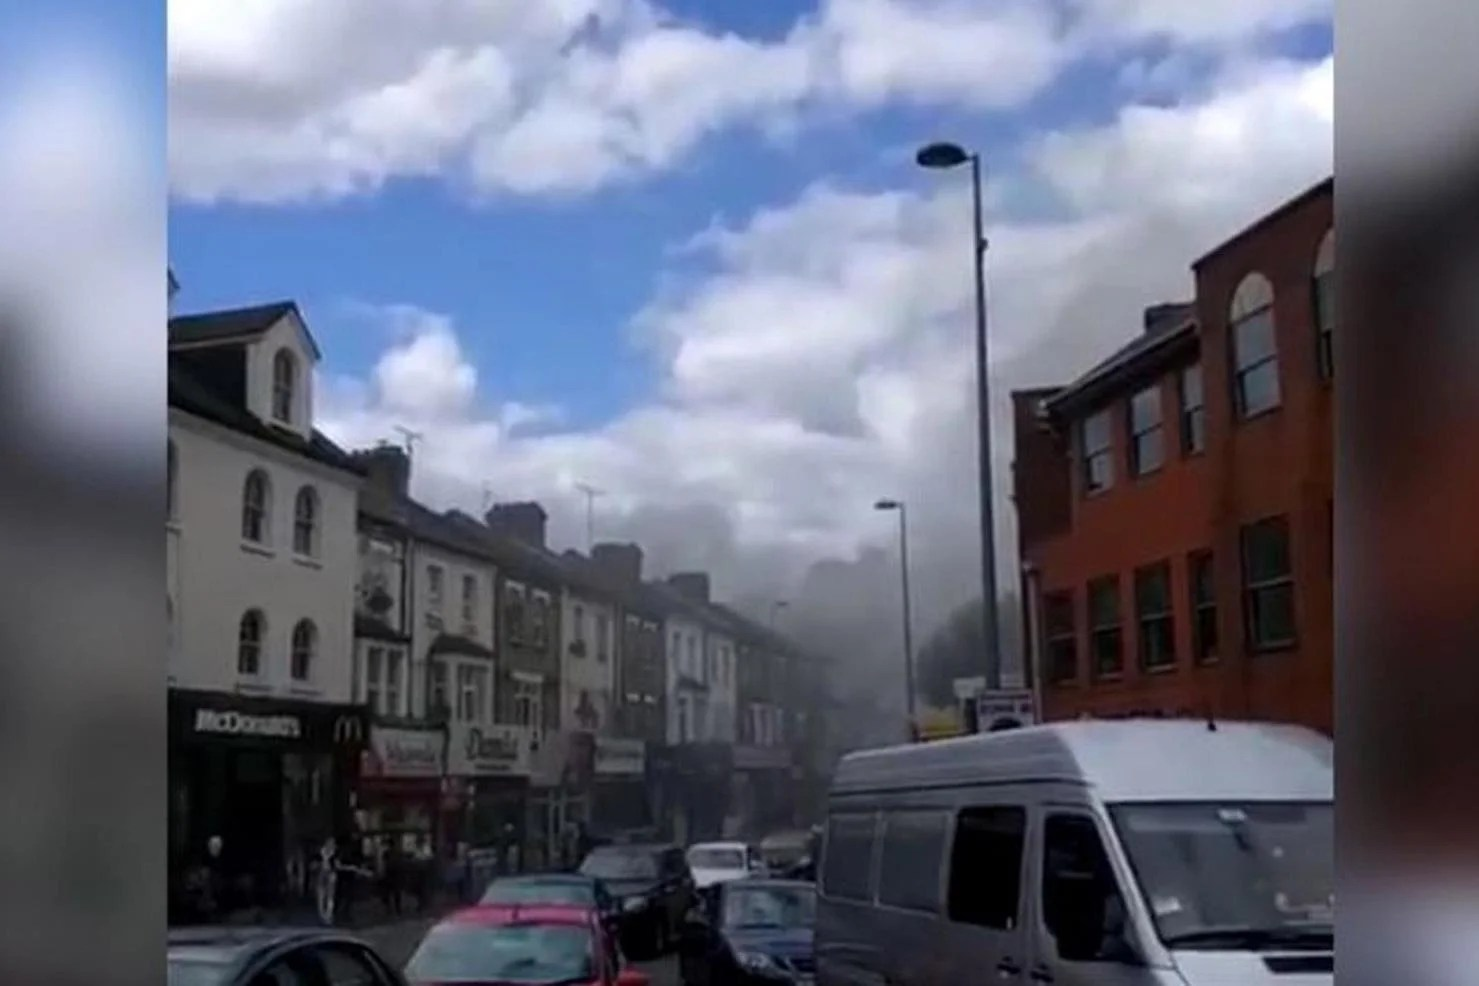 Walthamstow fire Smoke billows into sky as dozens of firefighters tackle blaze at takeaway